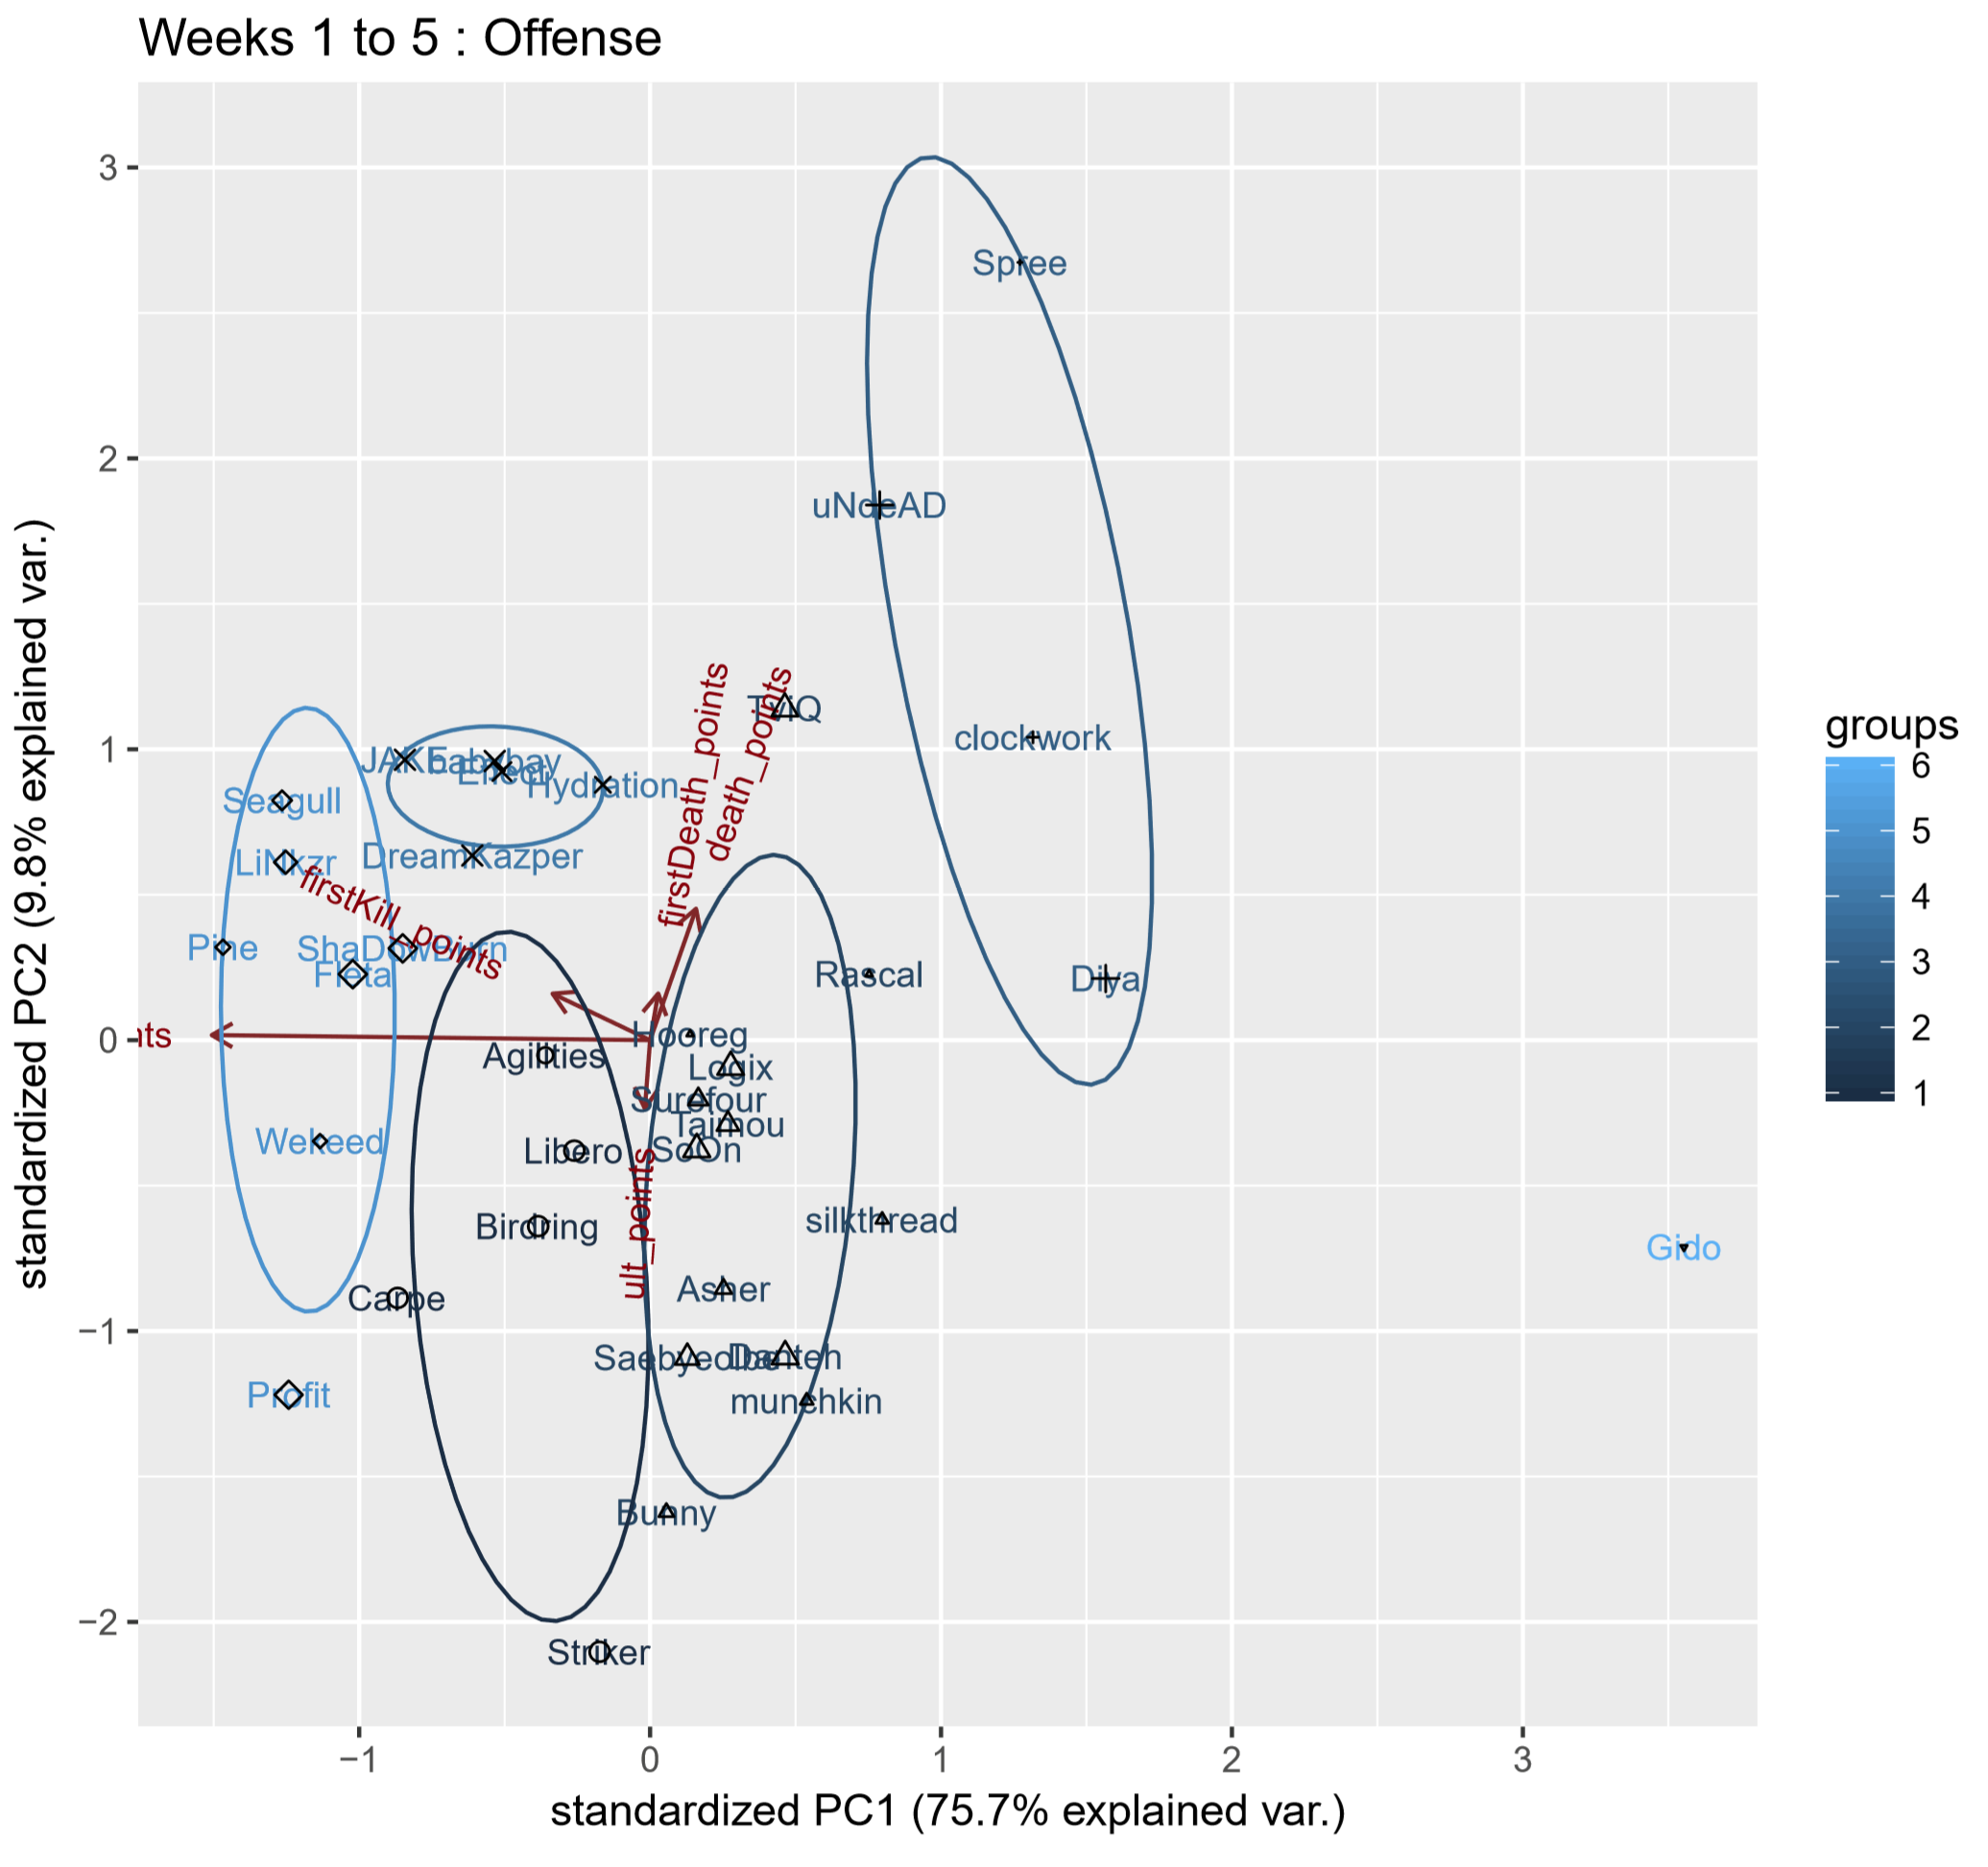 Figure 1. Weeks 1 to 5 offense player principal component analysis biplot, labels by player name.